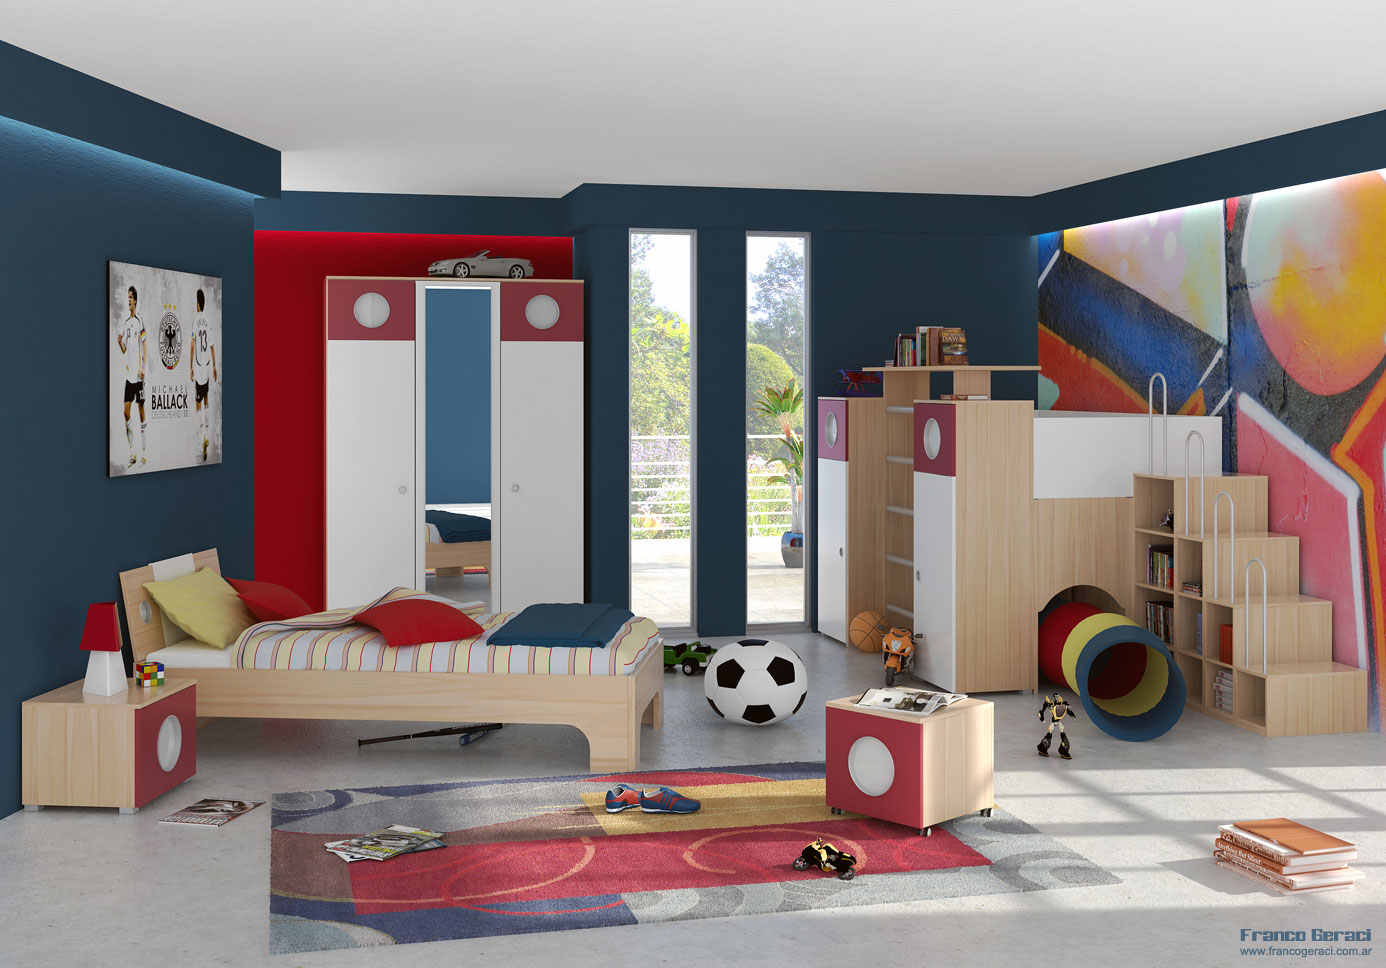 A spacious kids bedroom design ideas interior design ideas for Room decor ideas for toddlers